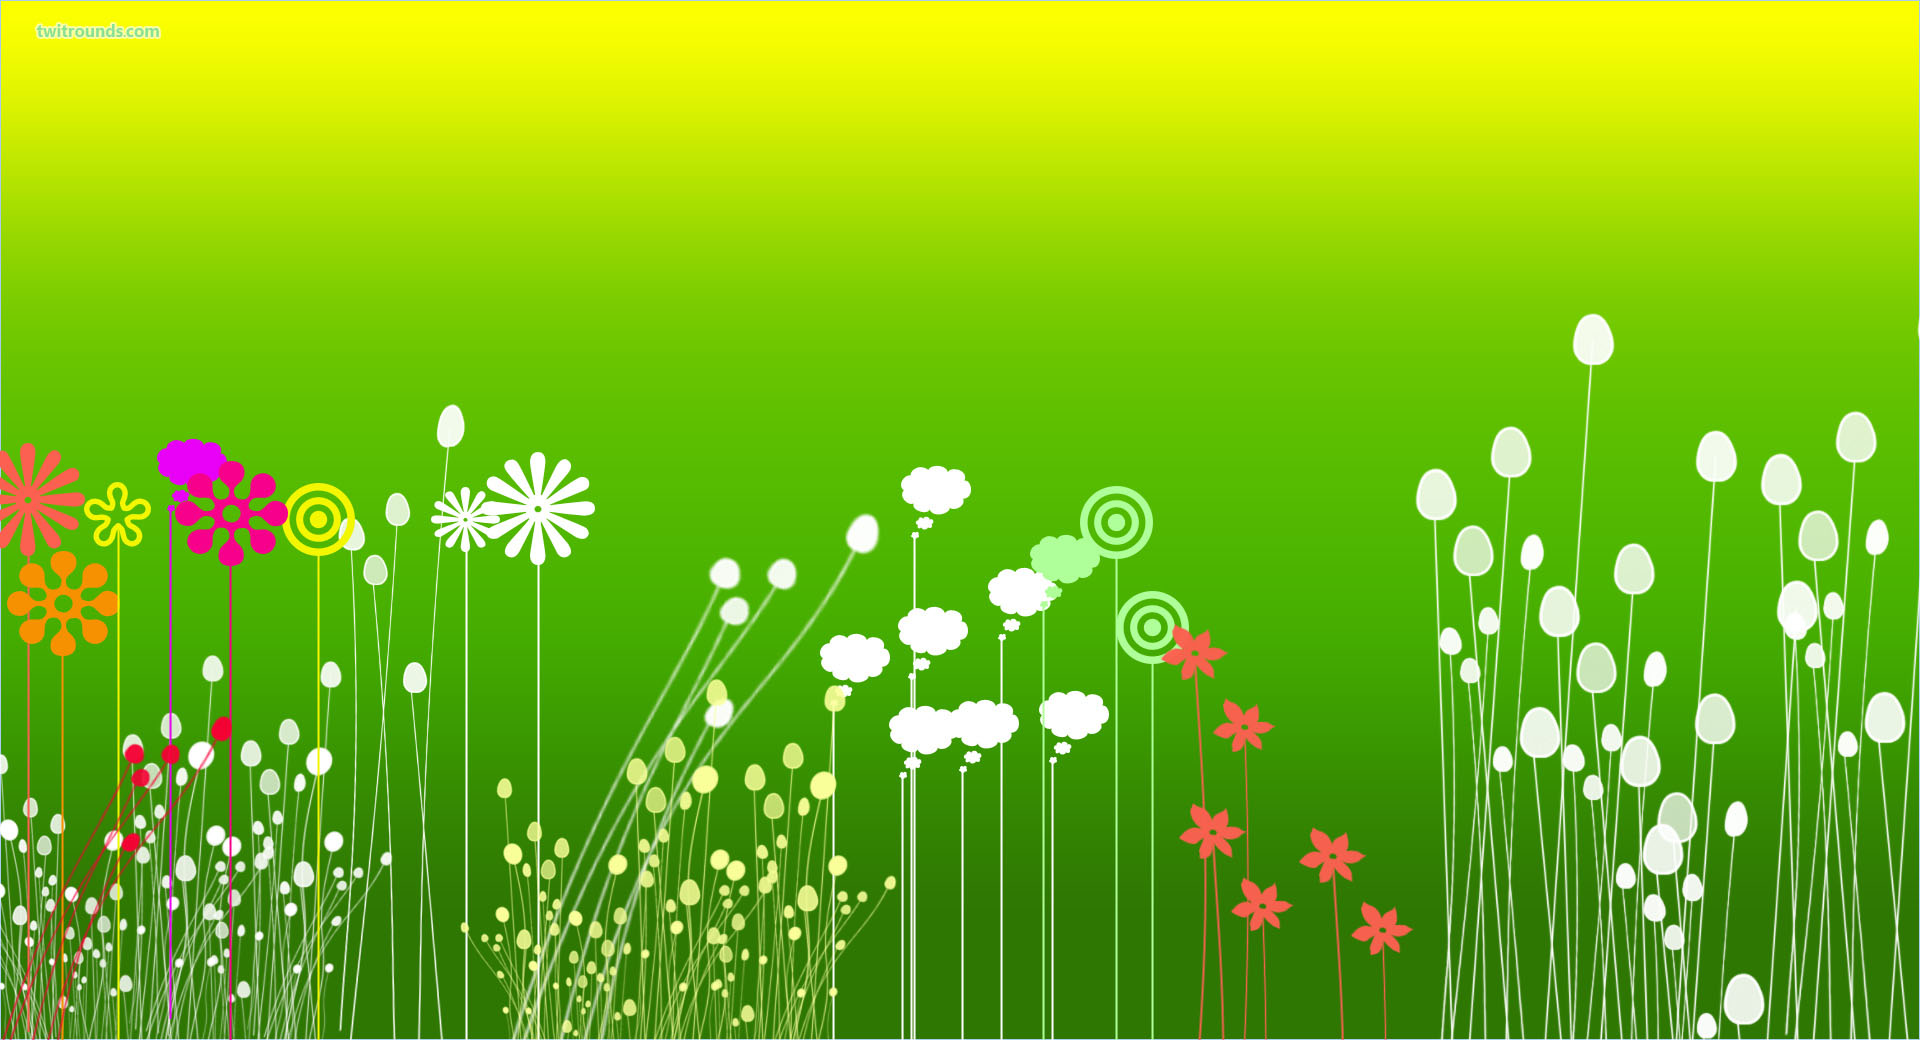 December 17, 2015 - Green Flowers (Backgrounds), 1920x1040